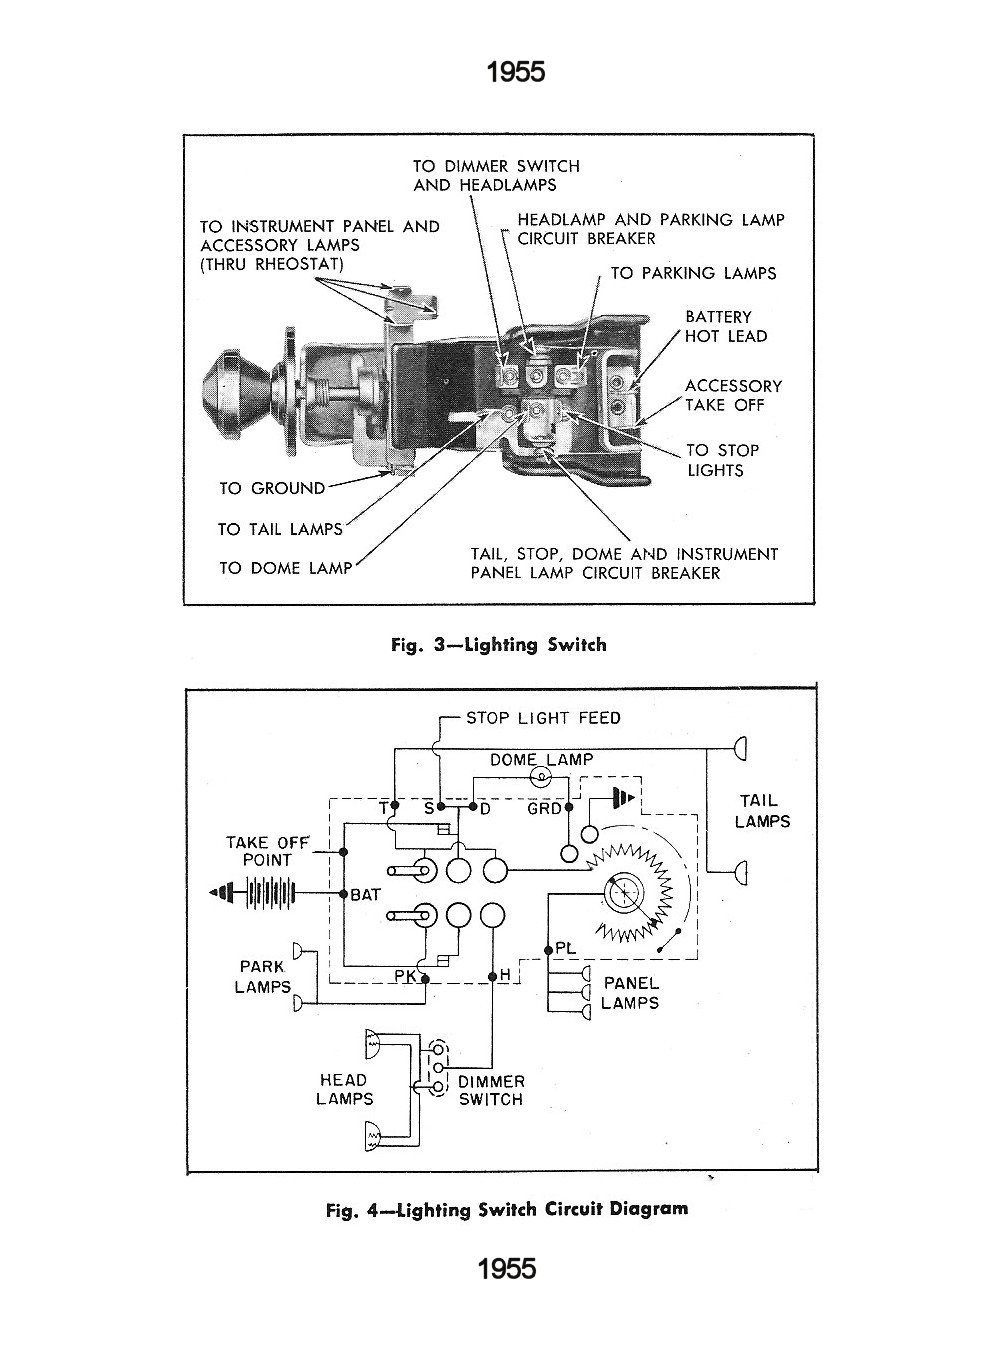 wiring diagram for 1985 chevy truck wiring diagram1985 corvette wiring diagram 12 lwe zionsnowboards de \\u2022